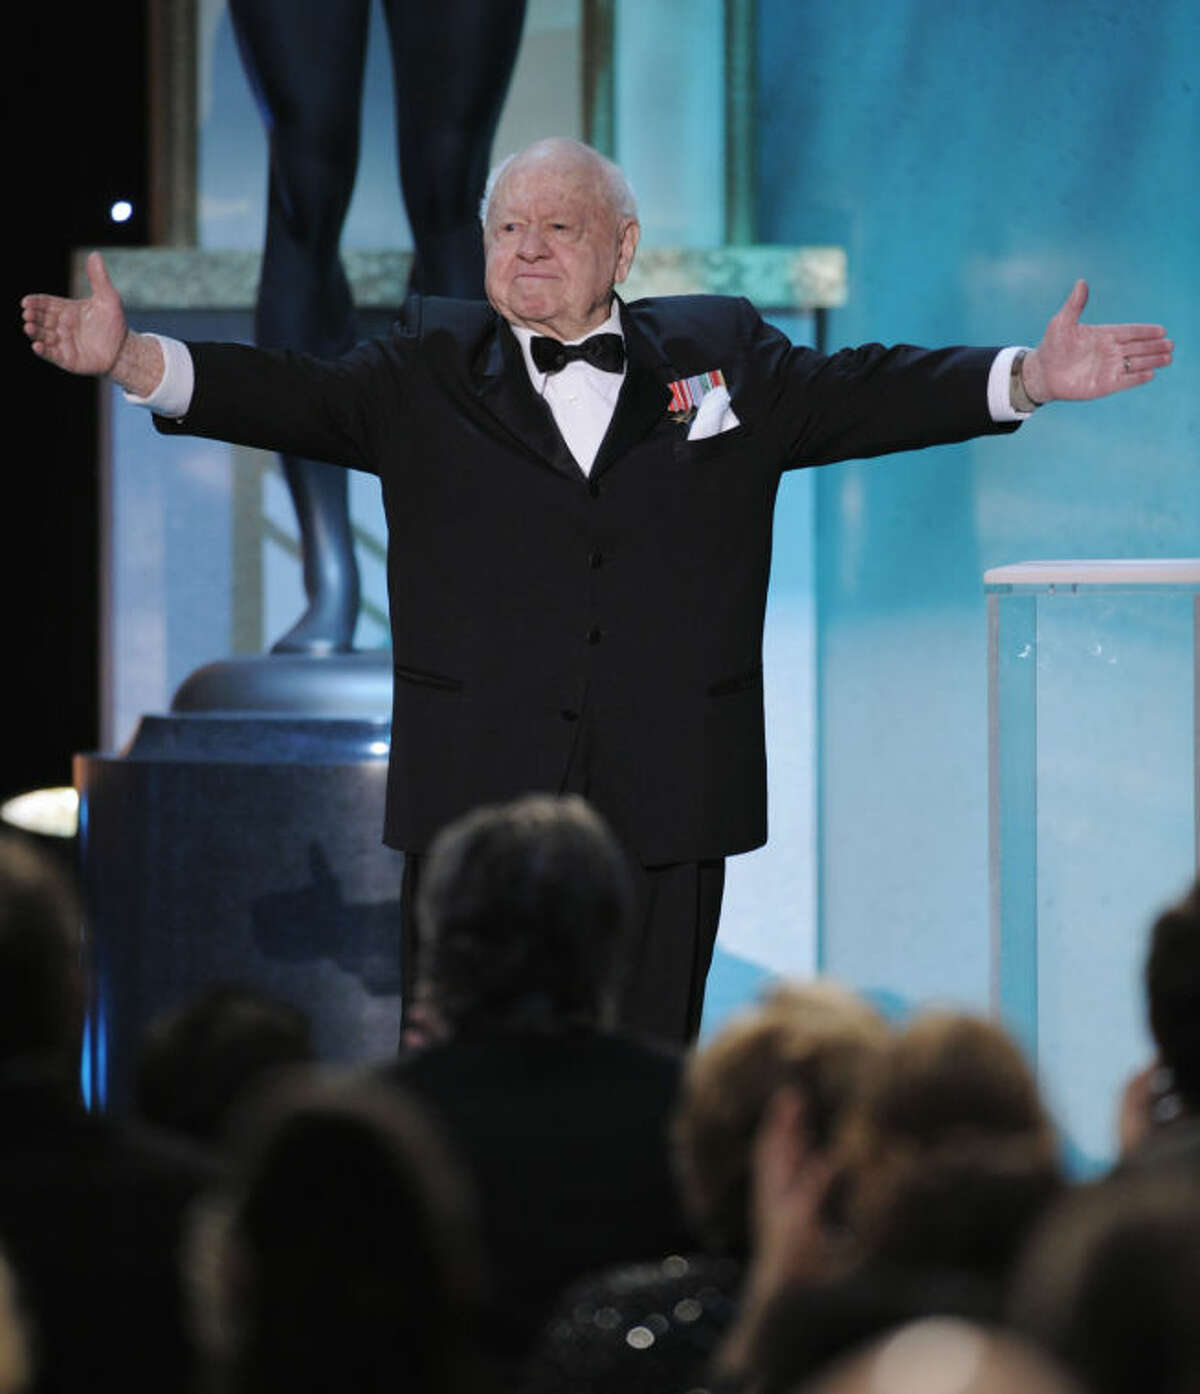 FILE - In this Sunday, Jan. 27, 2008, file photo, Mickey Rooney takes the stage to make an award presentation at the 14th Annual Screen Actors Guild Awards, in Los Angeles. Rooney, a Hollywood legend whose career spanned more than 80 years, has died. He was 93. Los Angeles Police Commander Andrew Smith said that Rooney was with his family when he died Sunday, April 6, 2014, at his North Hollywood home. (AP Photo/Mark J. Terrill, File)